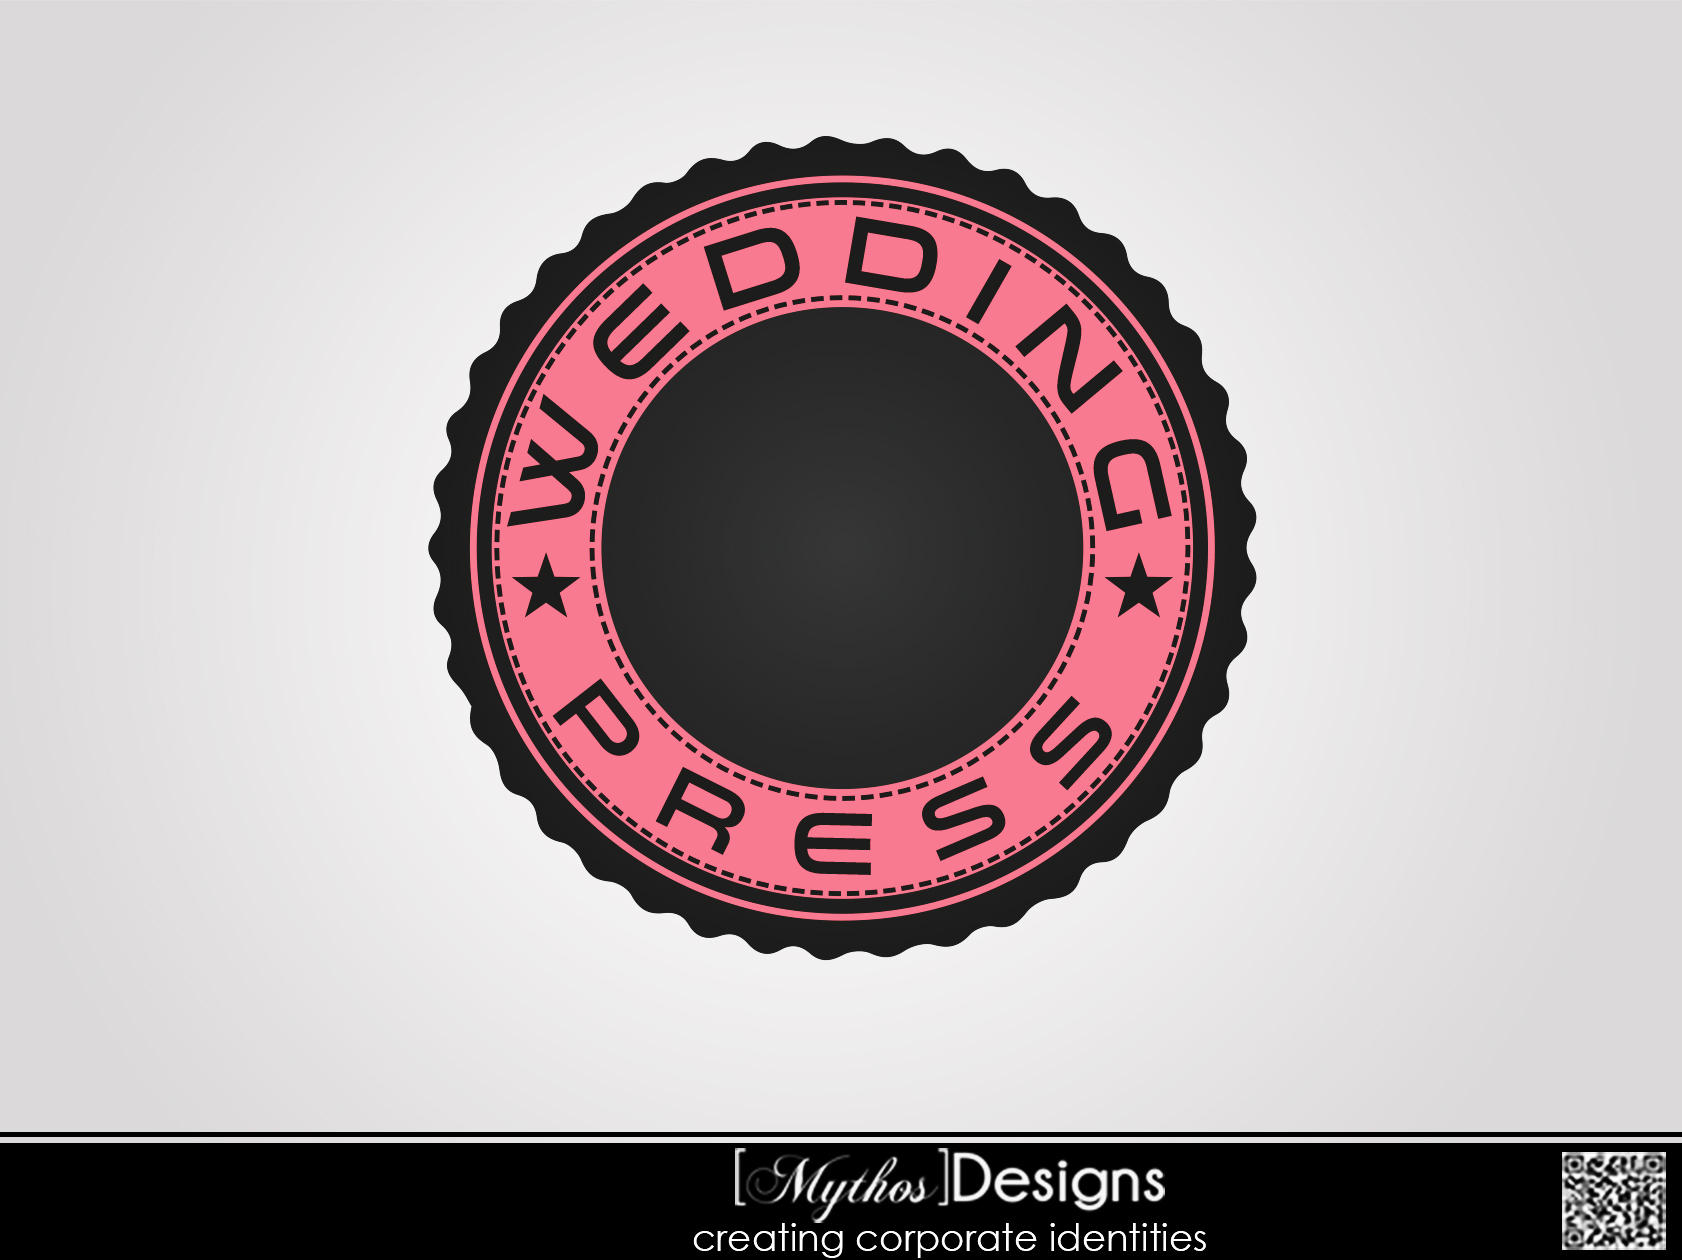 Logo Design by Mythos Designs - Entry No. 17 in the Logo Design Contest Wedding Writes Logo Design.